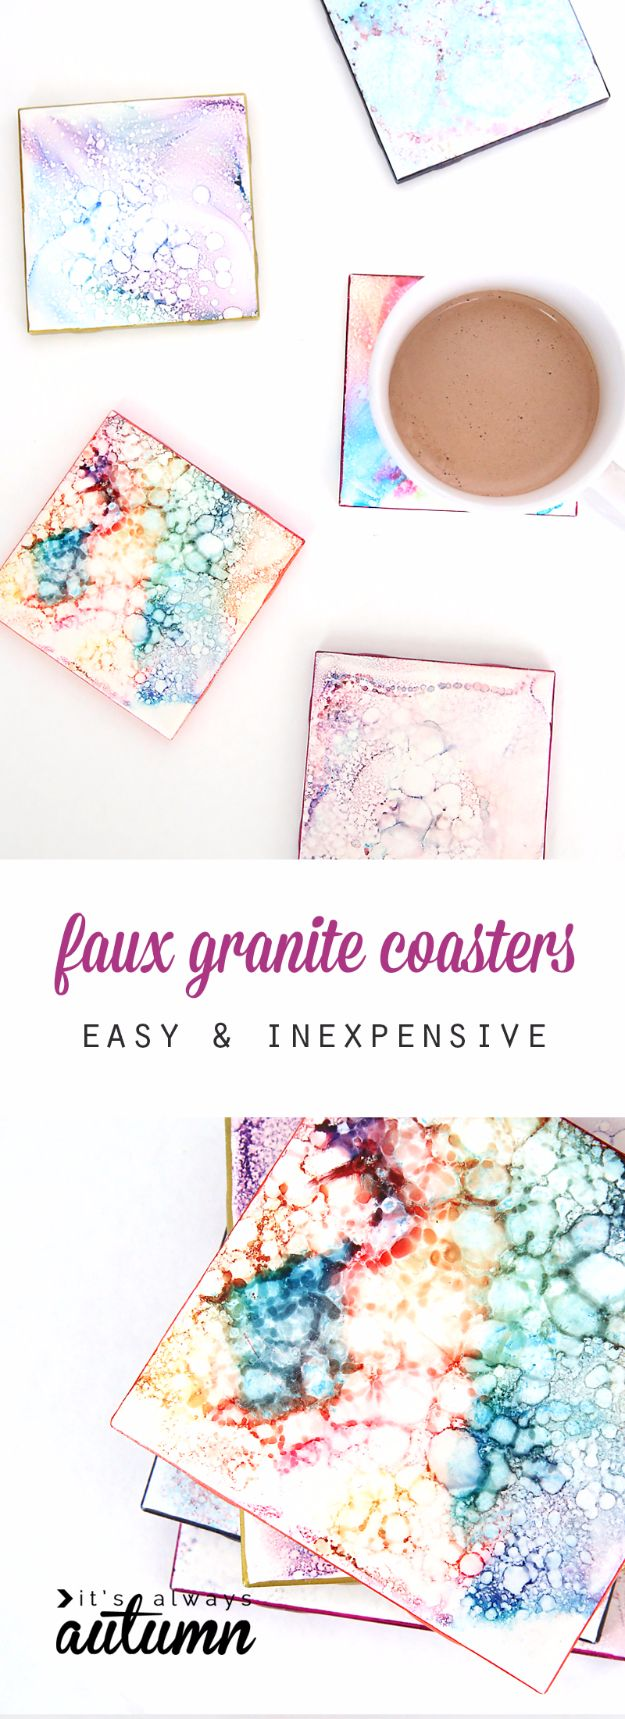 Cheap DIY Gifts and Inexpensive Homemade Christmas Gift Ideas for People on A Budget - Faux Granite Coasters - To Make These Cool Presents Instead of Buying for the Holidays - Easy and Low Cost Gifts for Mom, Dad, Friends and Family - Quick Dollar Store Crafts and Projects for Xmas Gift Giving Parties - Step by Step Tutorials and Instructions http://diyjoy.com/cheap-holiday-gift-ideas-to-make